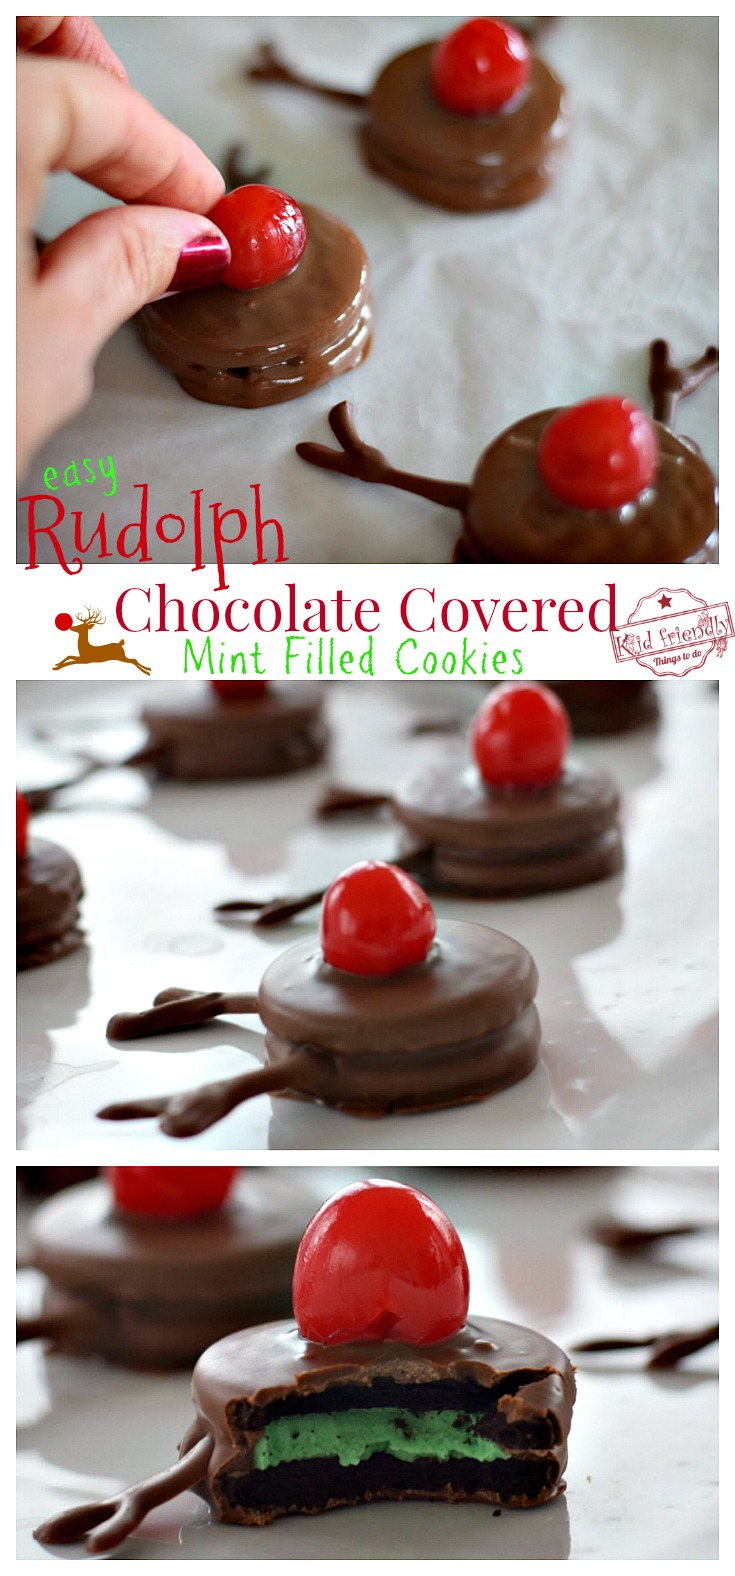 Easy Rudolph Chocolate Covered Mint Stuffed Cookies! - A Cute and Yummy Dessert - Perfect and Simple DIY for Christmas parties or fun food craft with the kids - www.kidfriendlythingstodo.com